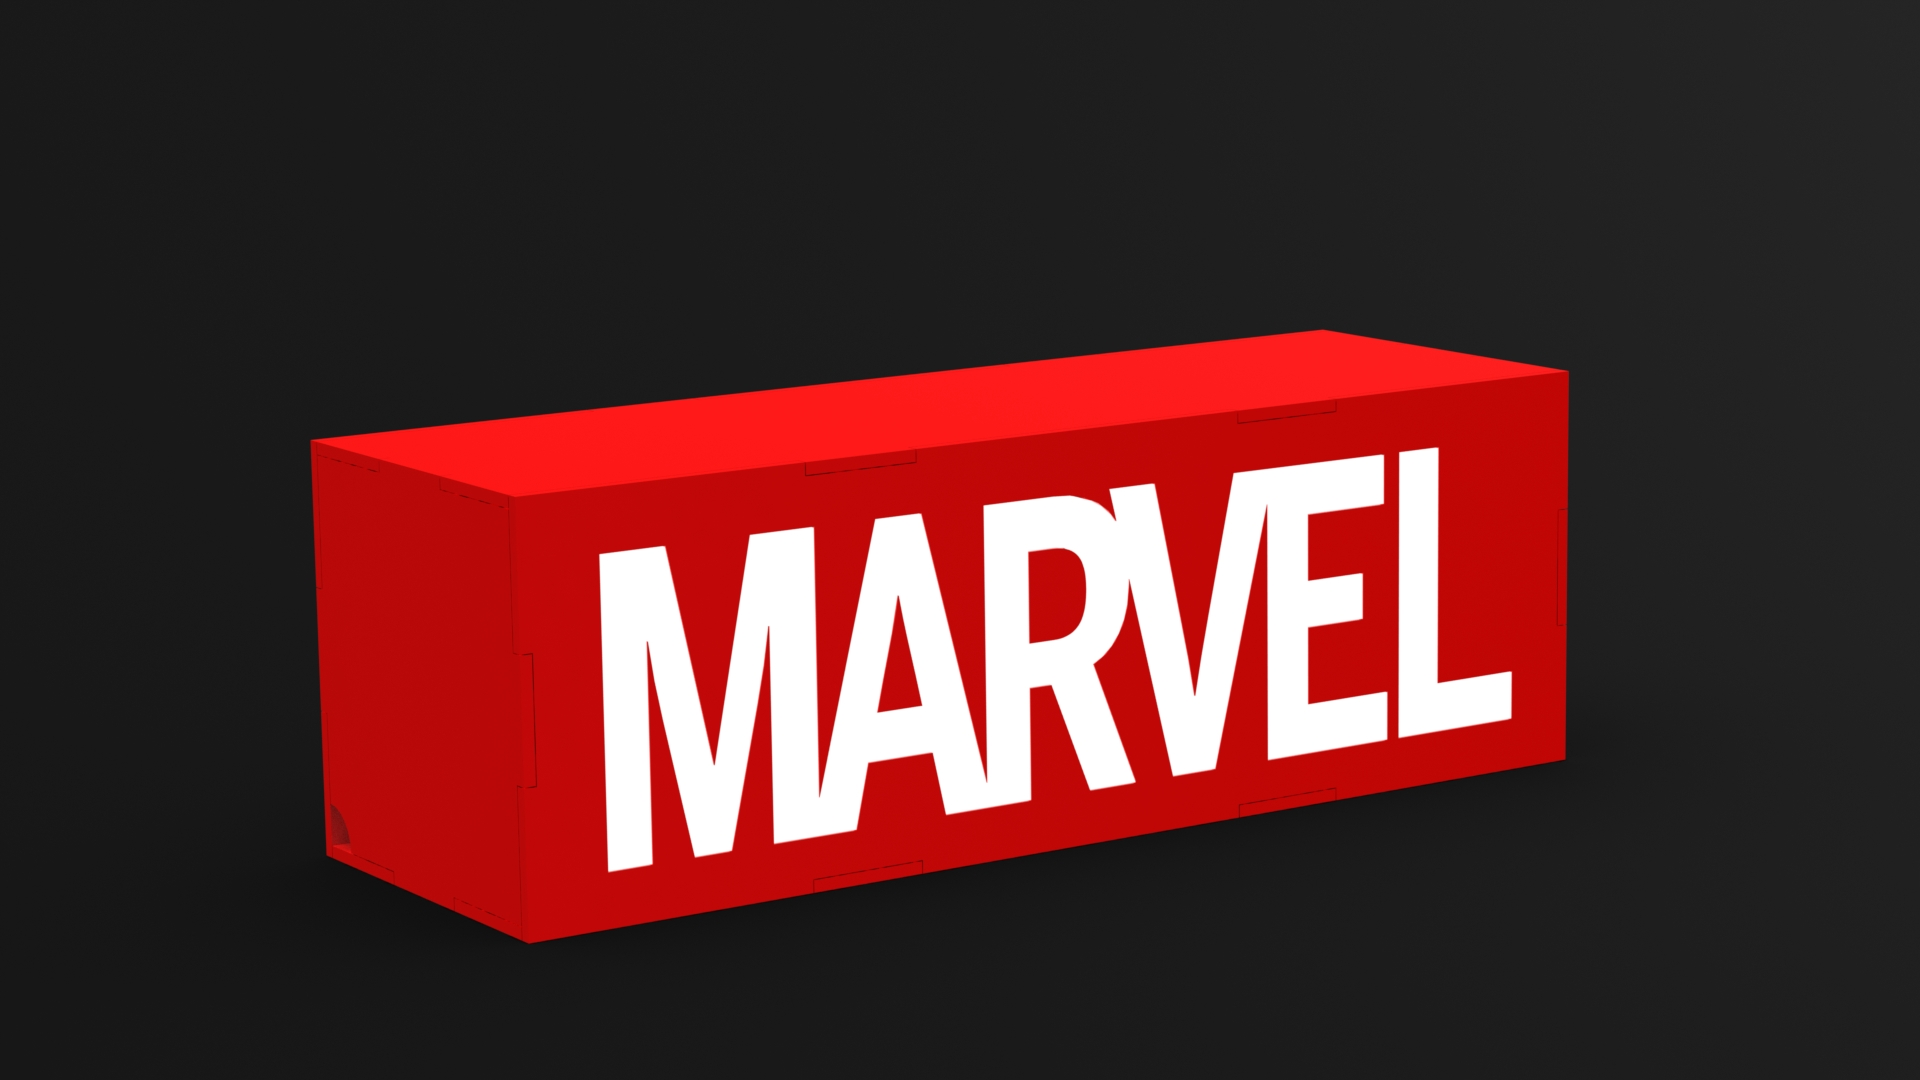 Marvel Light Box